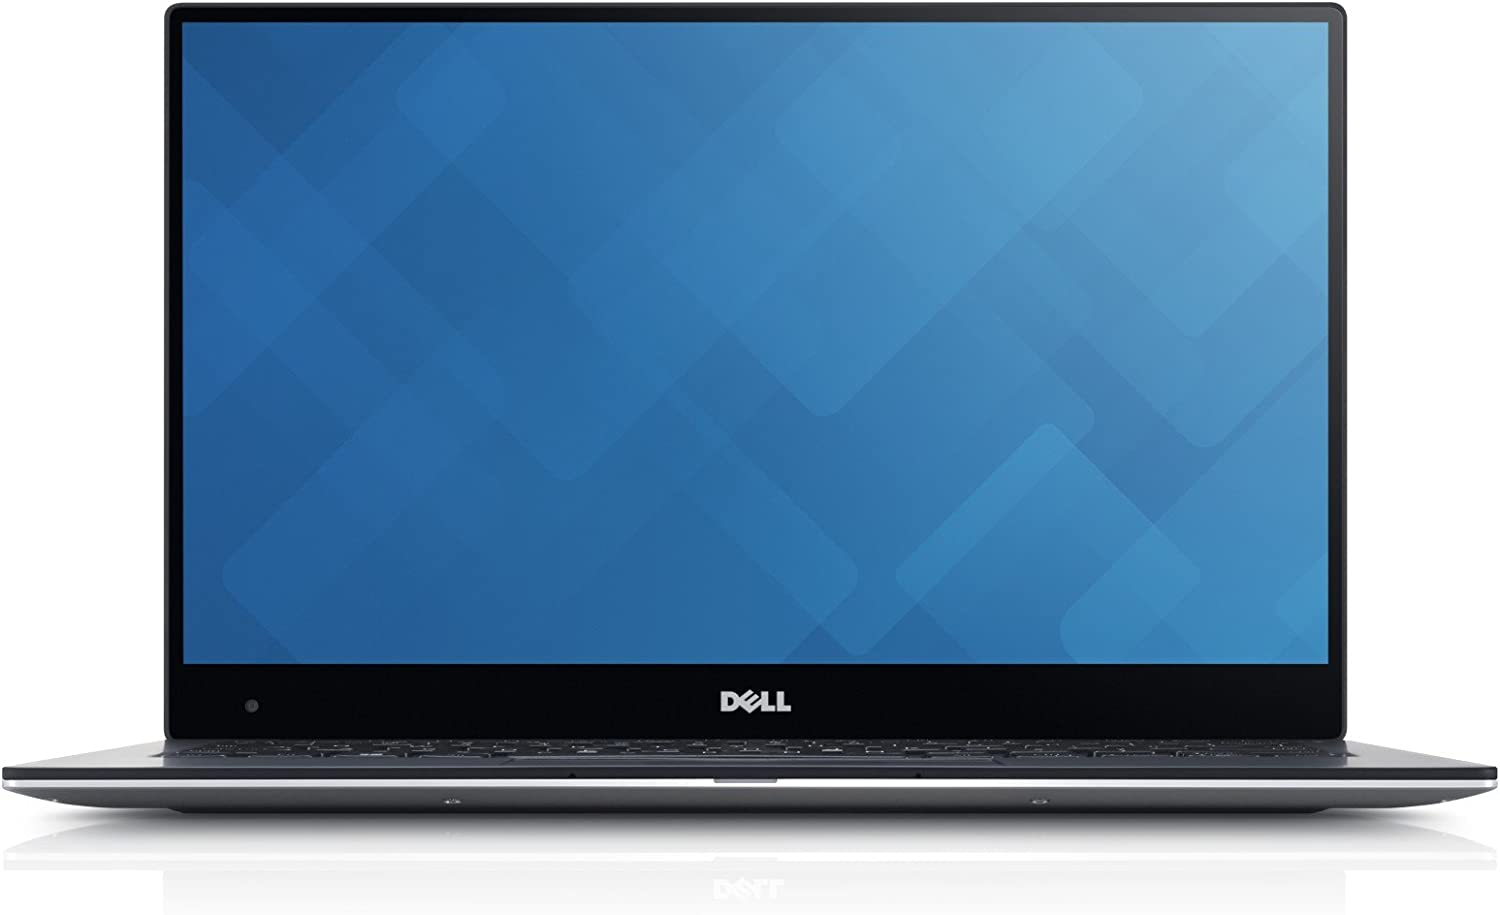 "Dell XPS 13 9360 13.3"" FHD Laptop 7th Gen Intel Core i7-7560U, 8GB RAM, 256GB SSD Machined Aluminum Display Silver Win 10 Professional (Renewed)"